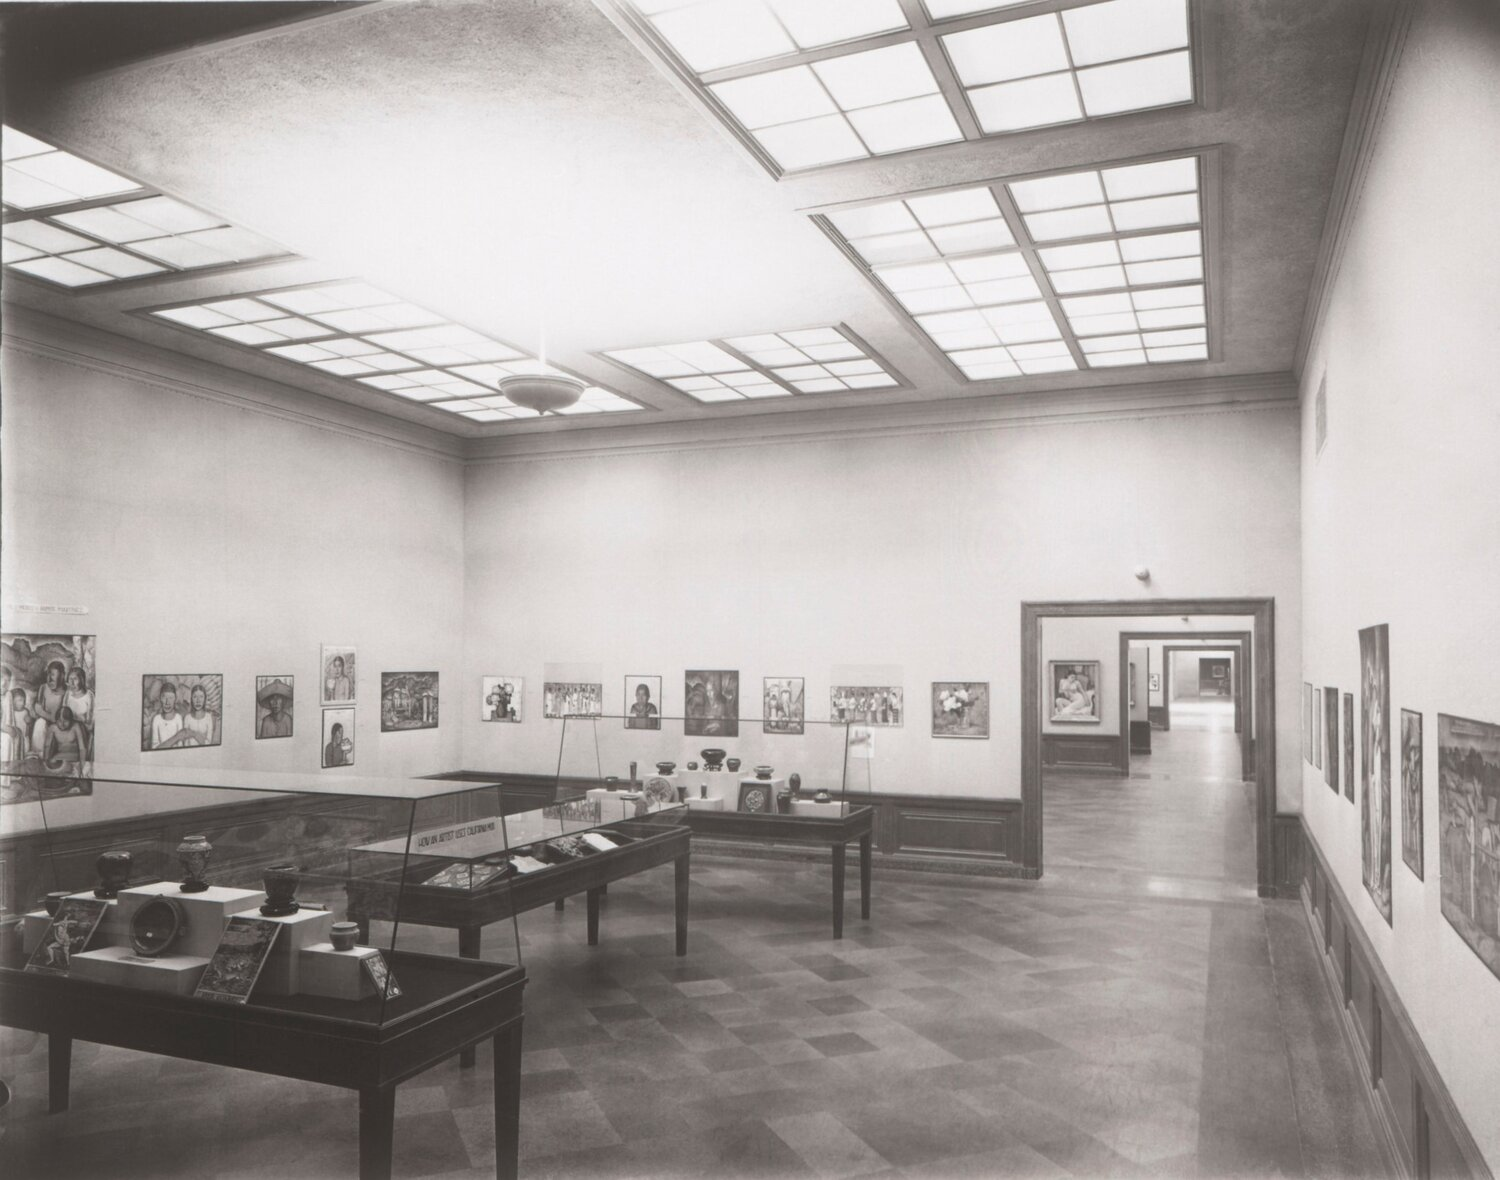 Exhibition of work by Ramos Martinez at the Los Angeles Museum of History, Science and Art, Exposition Park, 1931.